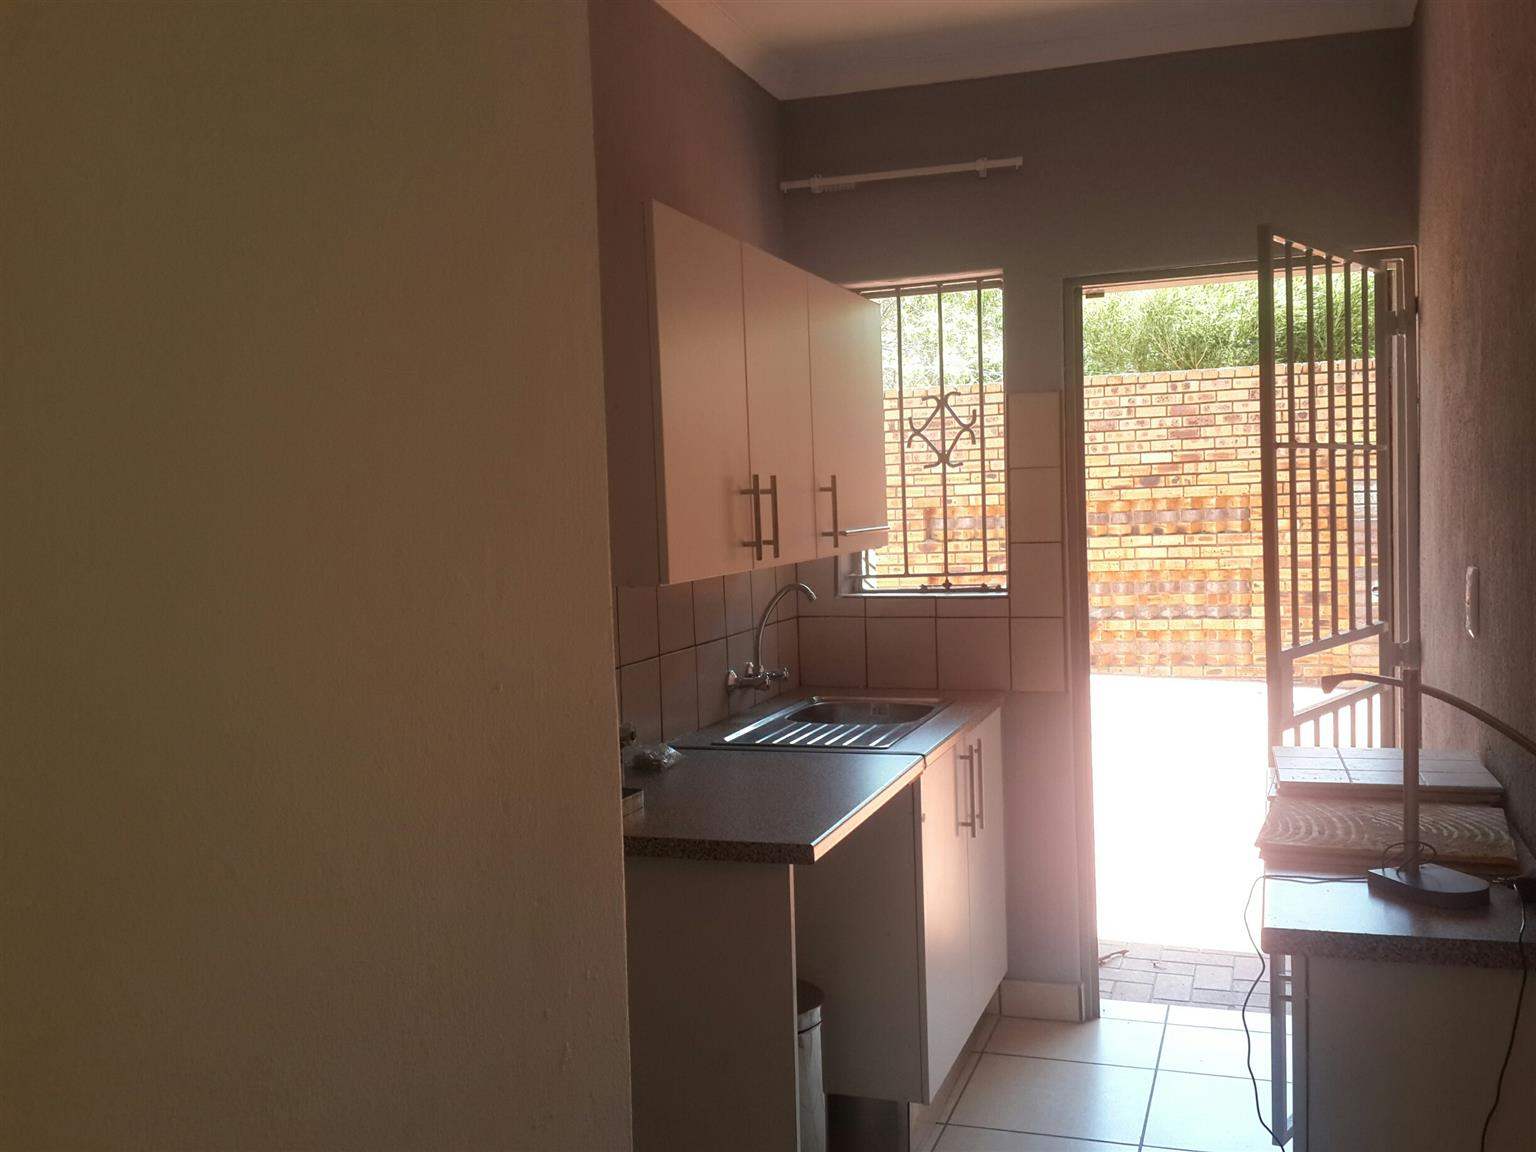 1 Bedroom cottage in prime location, Fourways